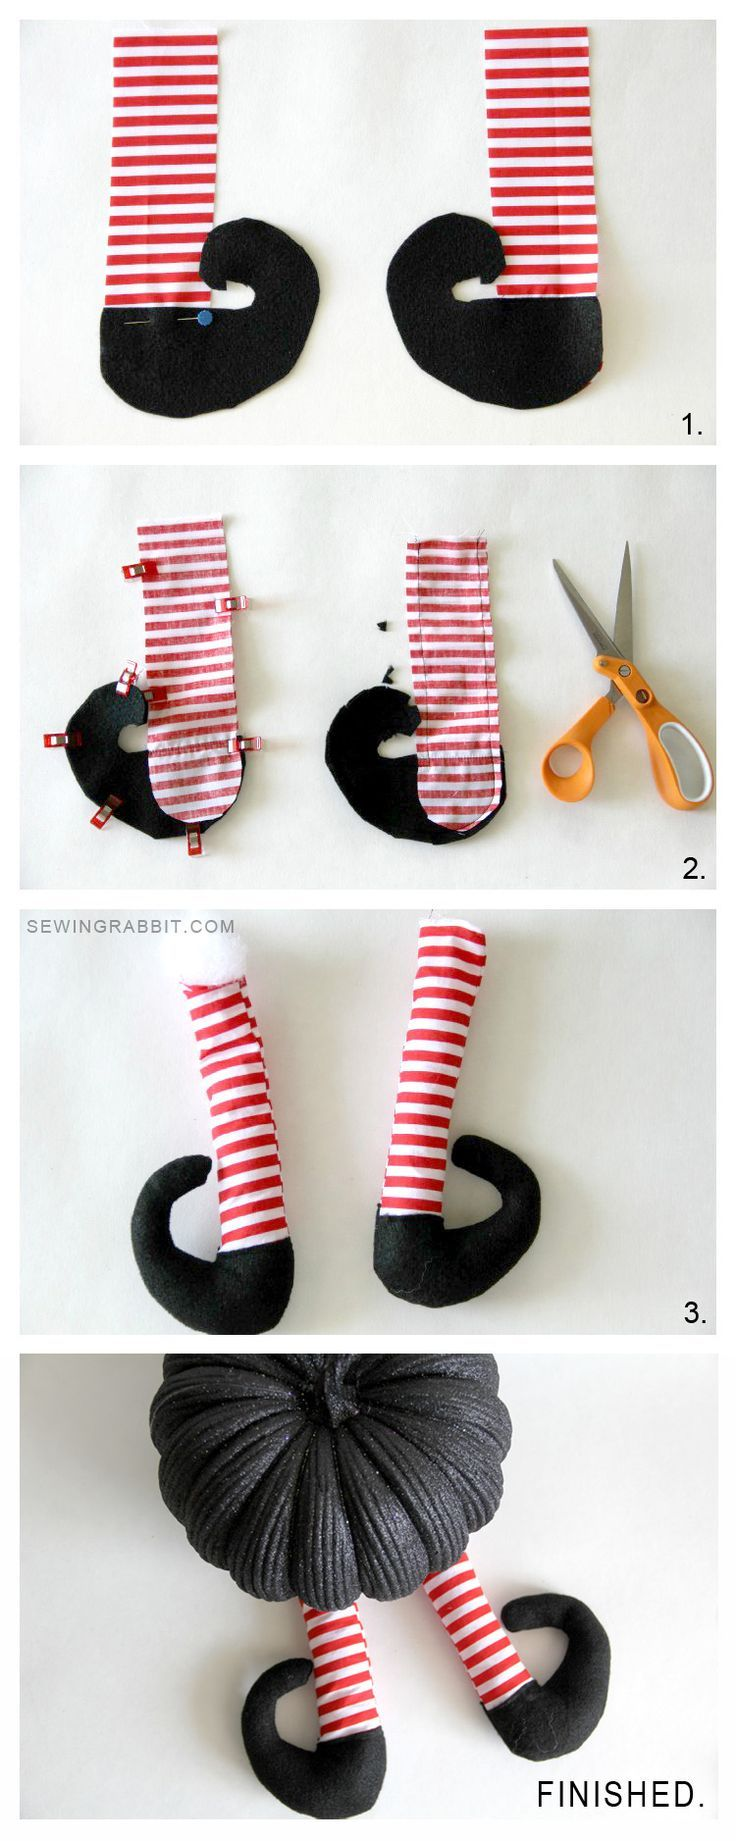 Transform any pumpkin into a fun, witch-themed Halloween decoration. Courtesy of Sewing Rabbit, this DIY witch legs tutorial is a great decoration for a party or your front porch.